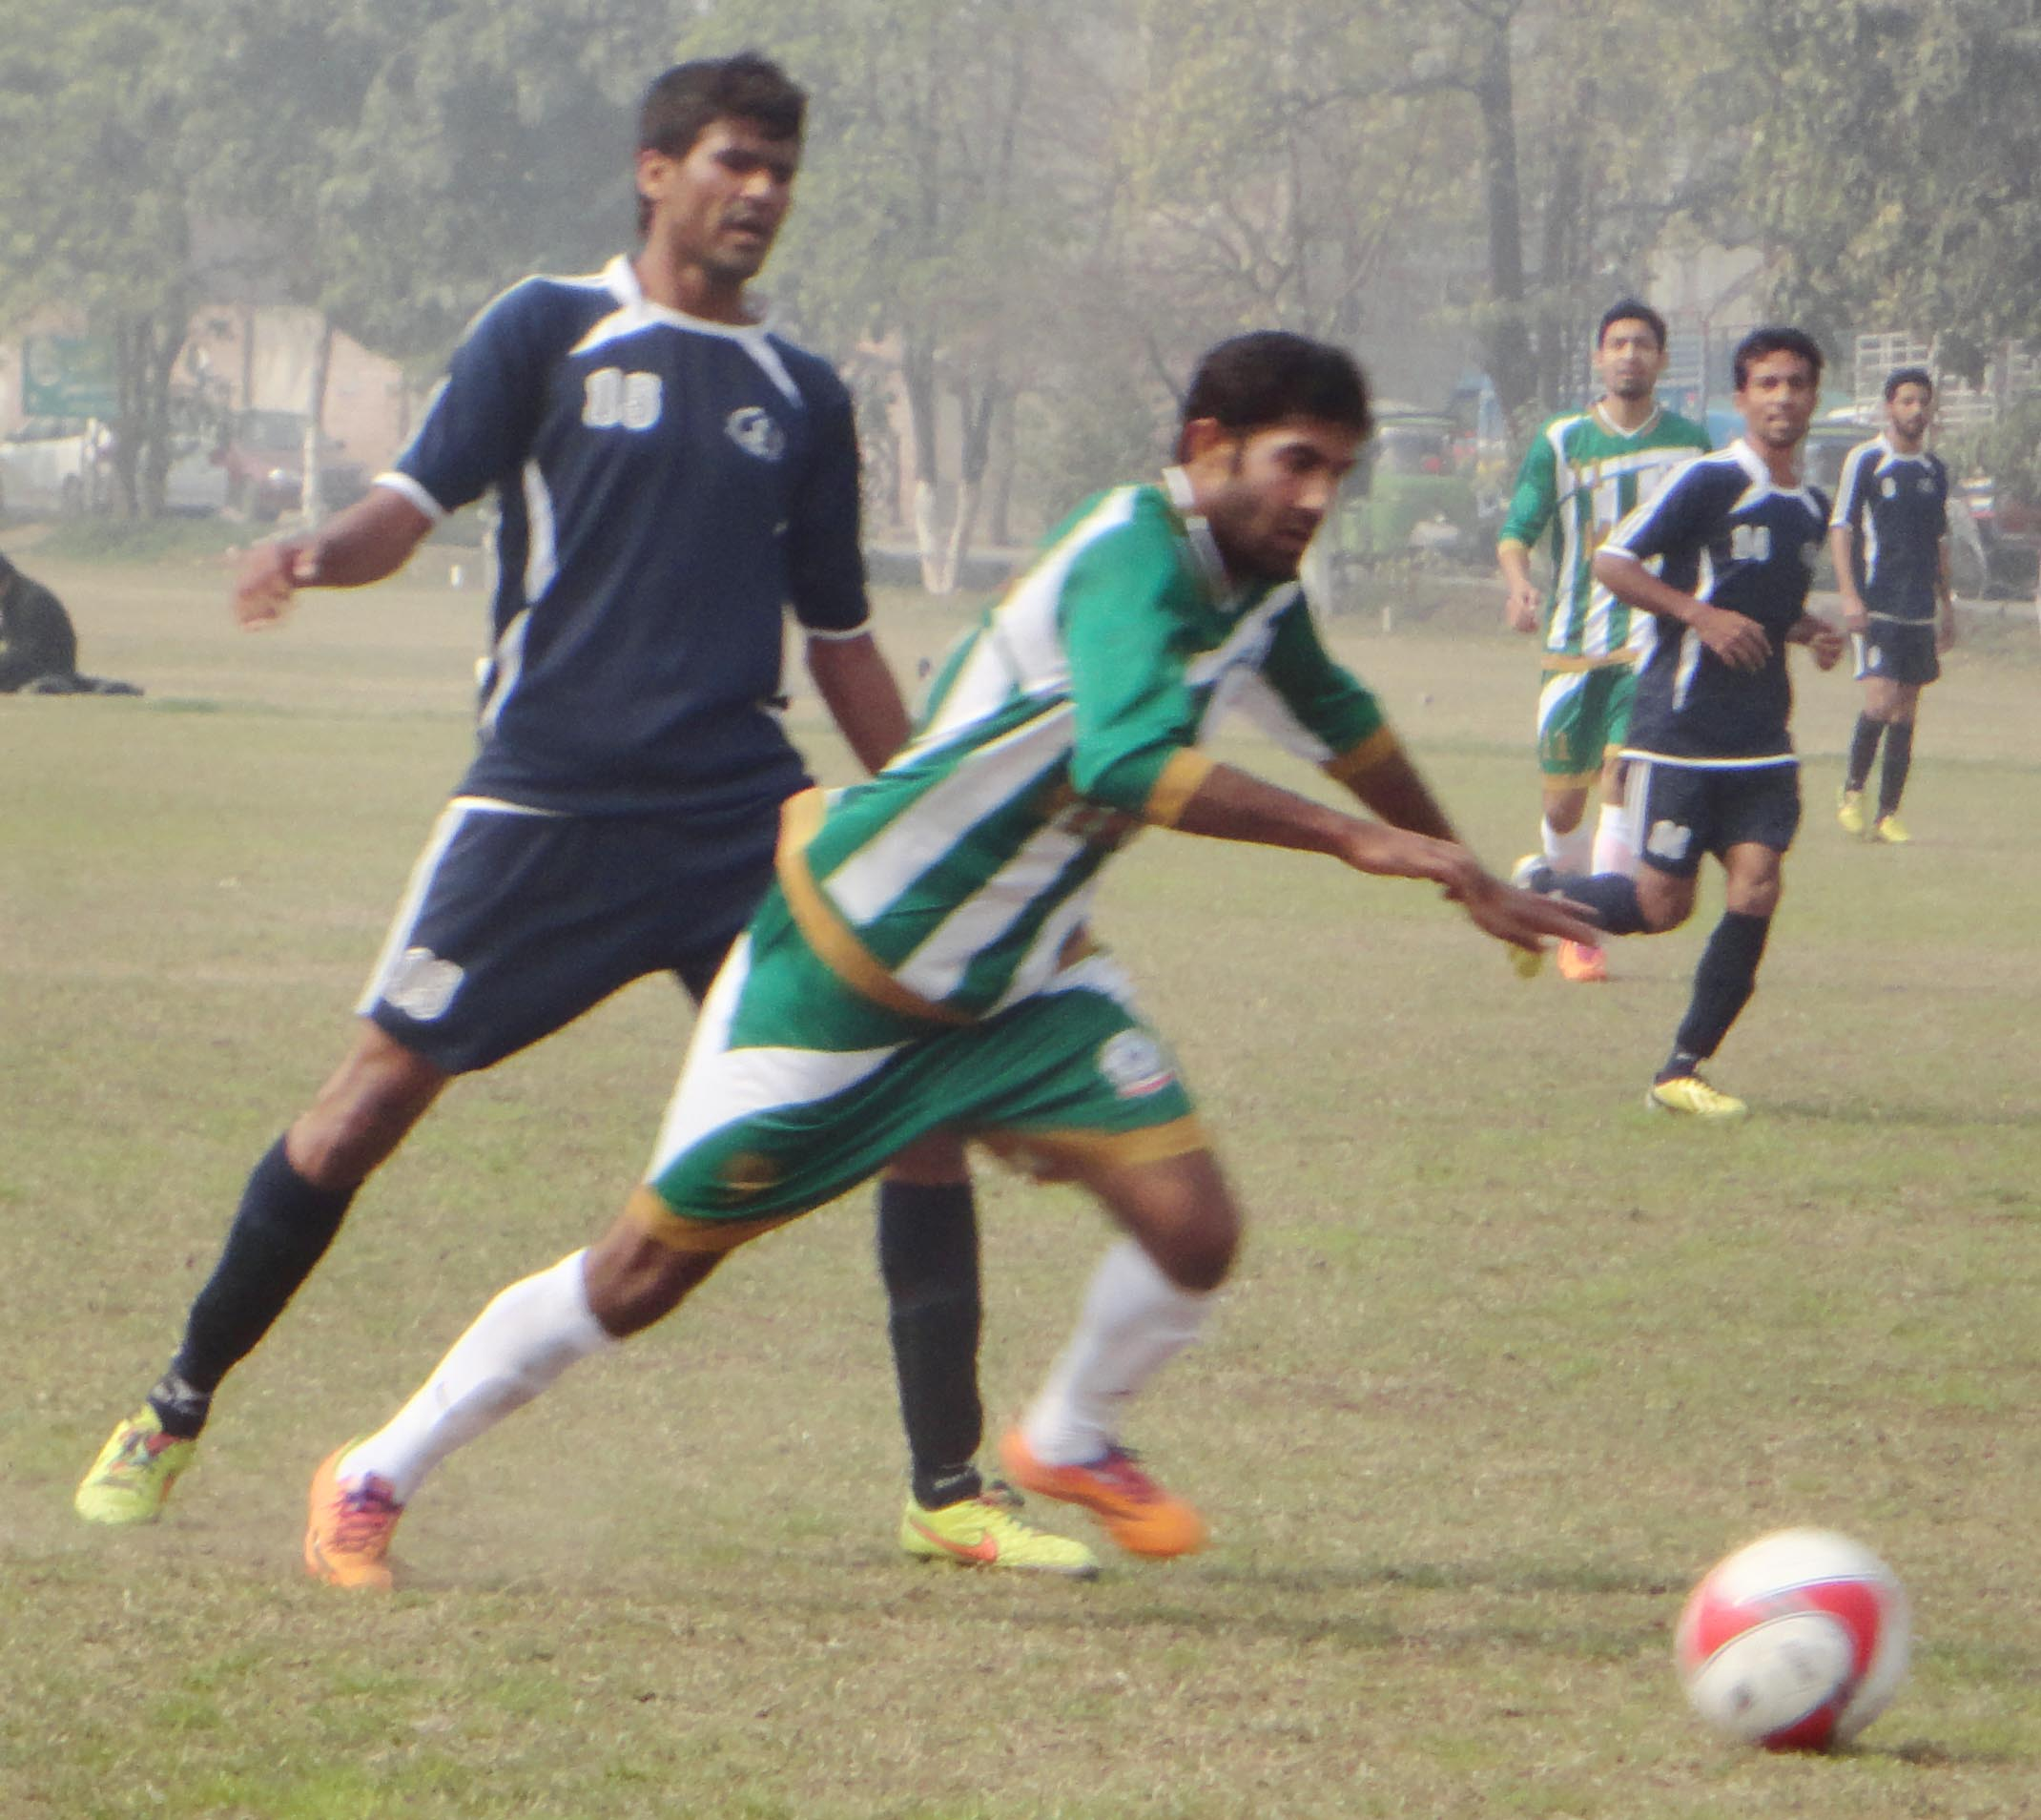 krl wapda nbp win in pff cup football com fpdc after being held at bay for most of the game krl scored in final 11 minutes adil opening the scoring in 79th minute muhammad hanif made it 2 0 by